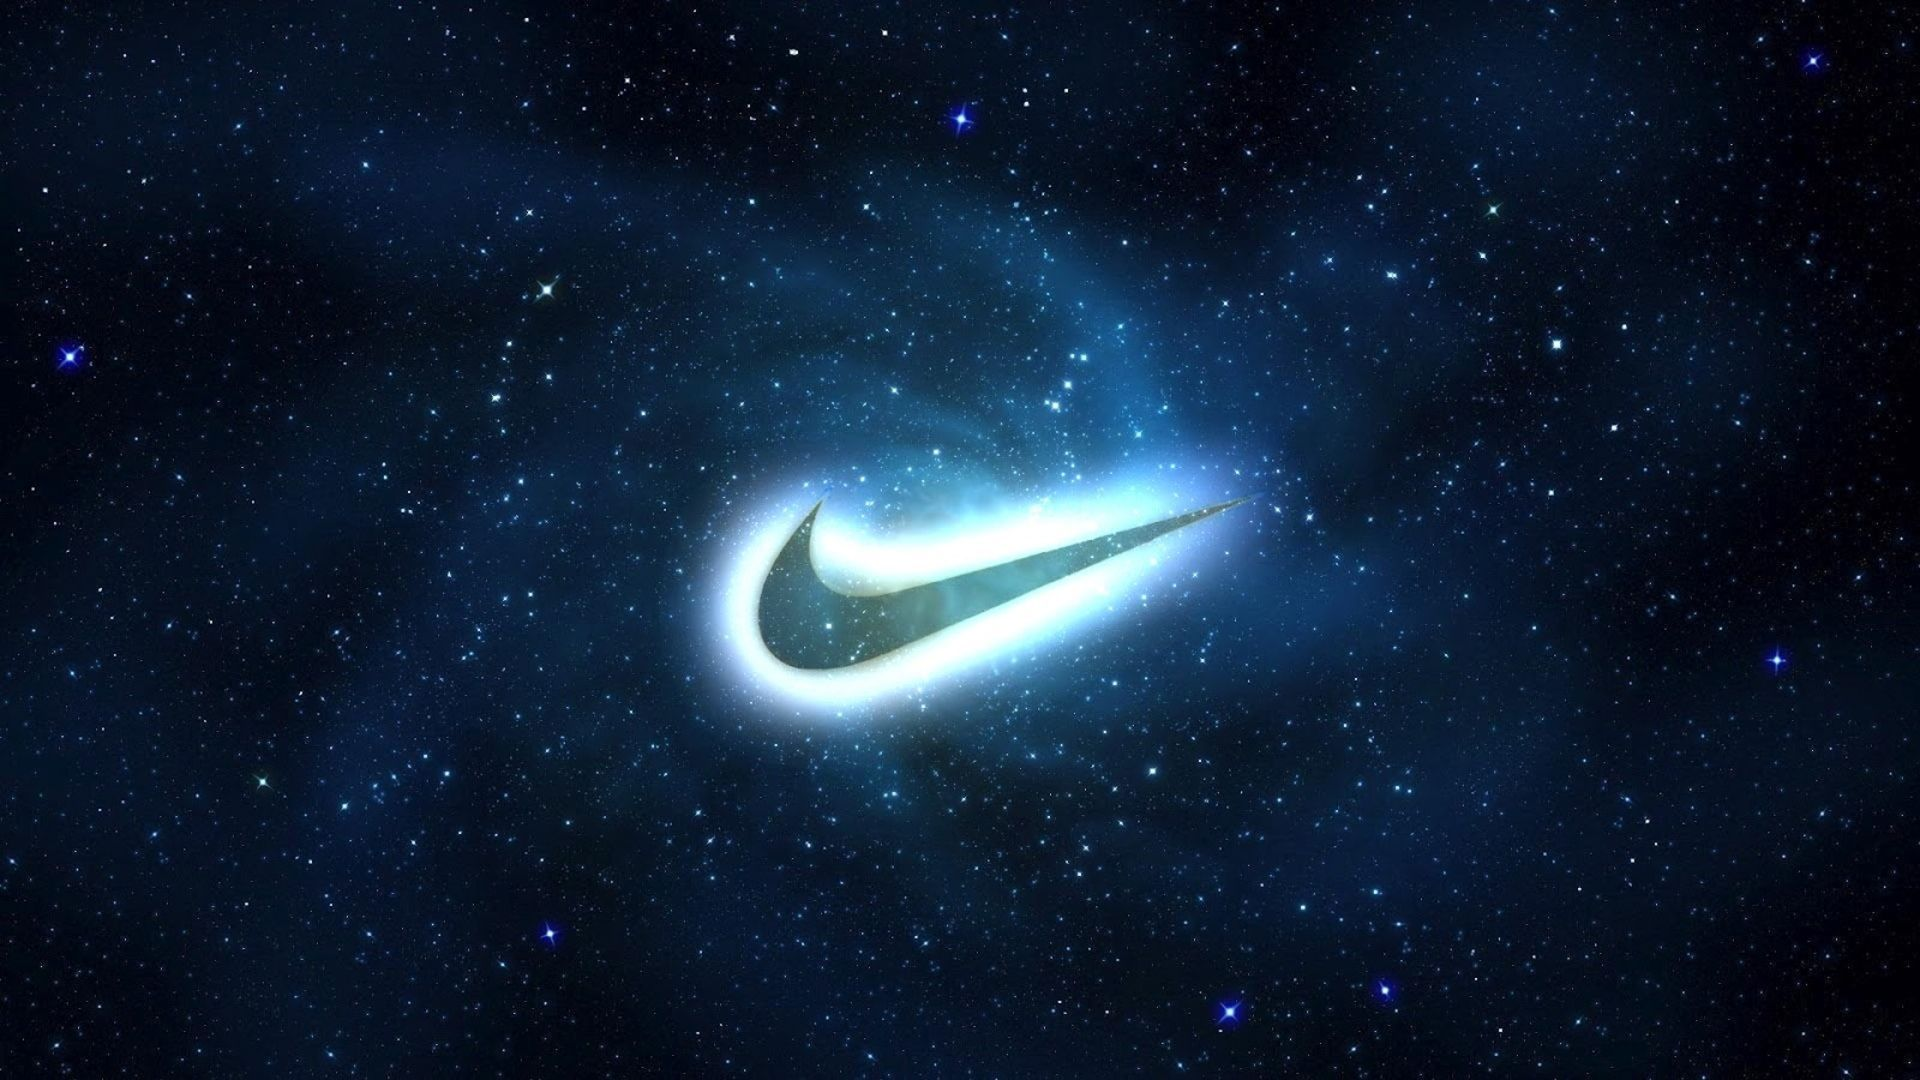 Hd wallpaper nike - Nike Wallpapers Full Hd Wallpapers Backgrounds Images Art Photos